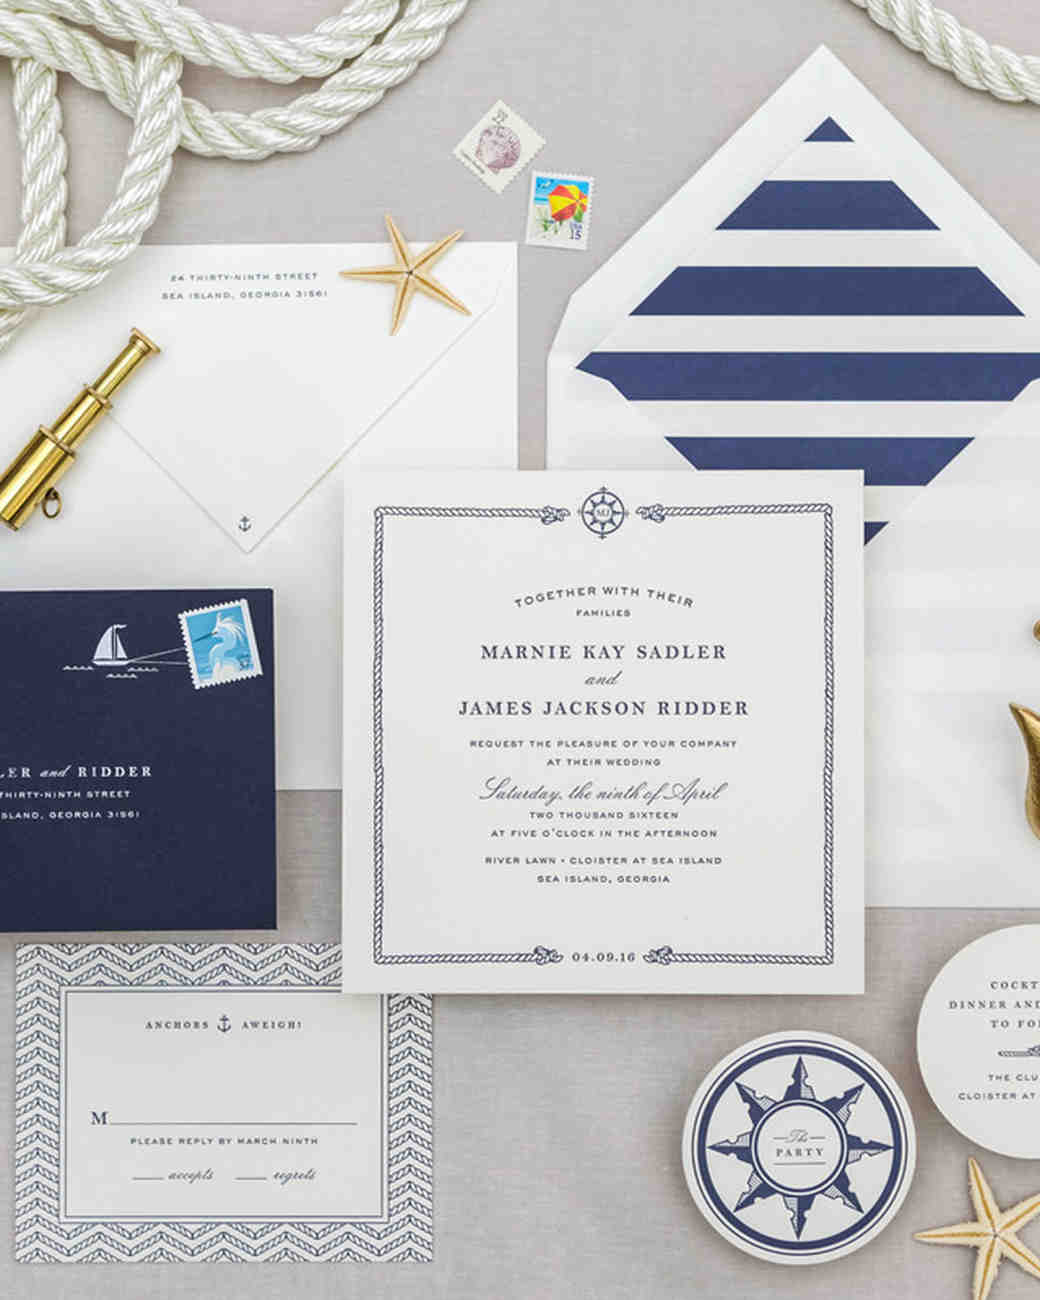 nautical invitation set with blue sea sailboat design elements